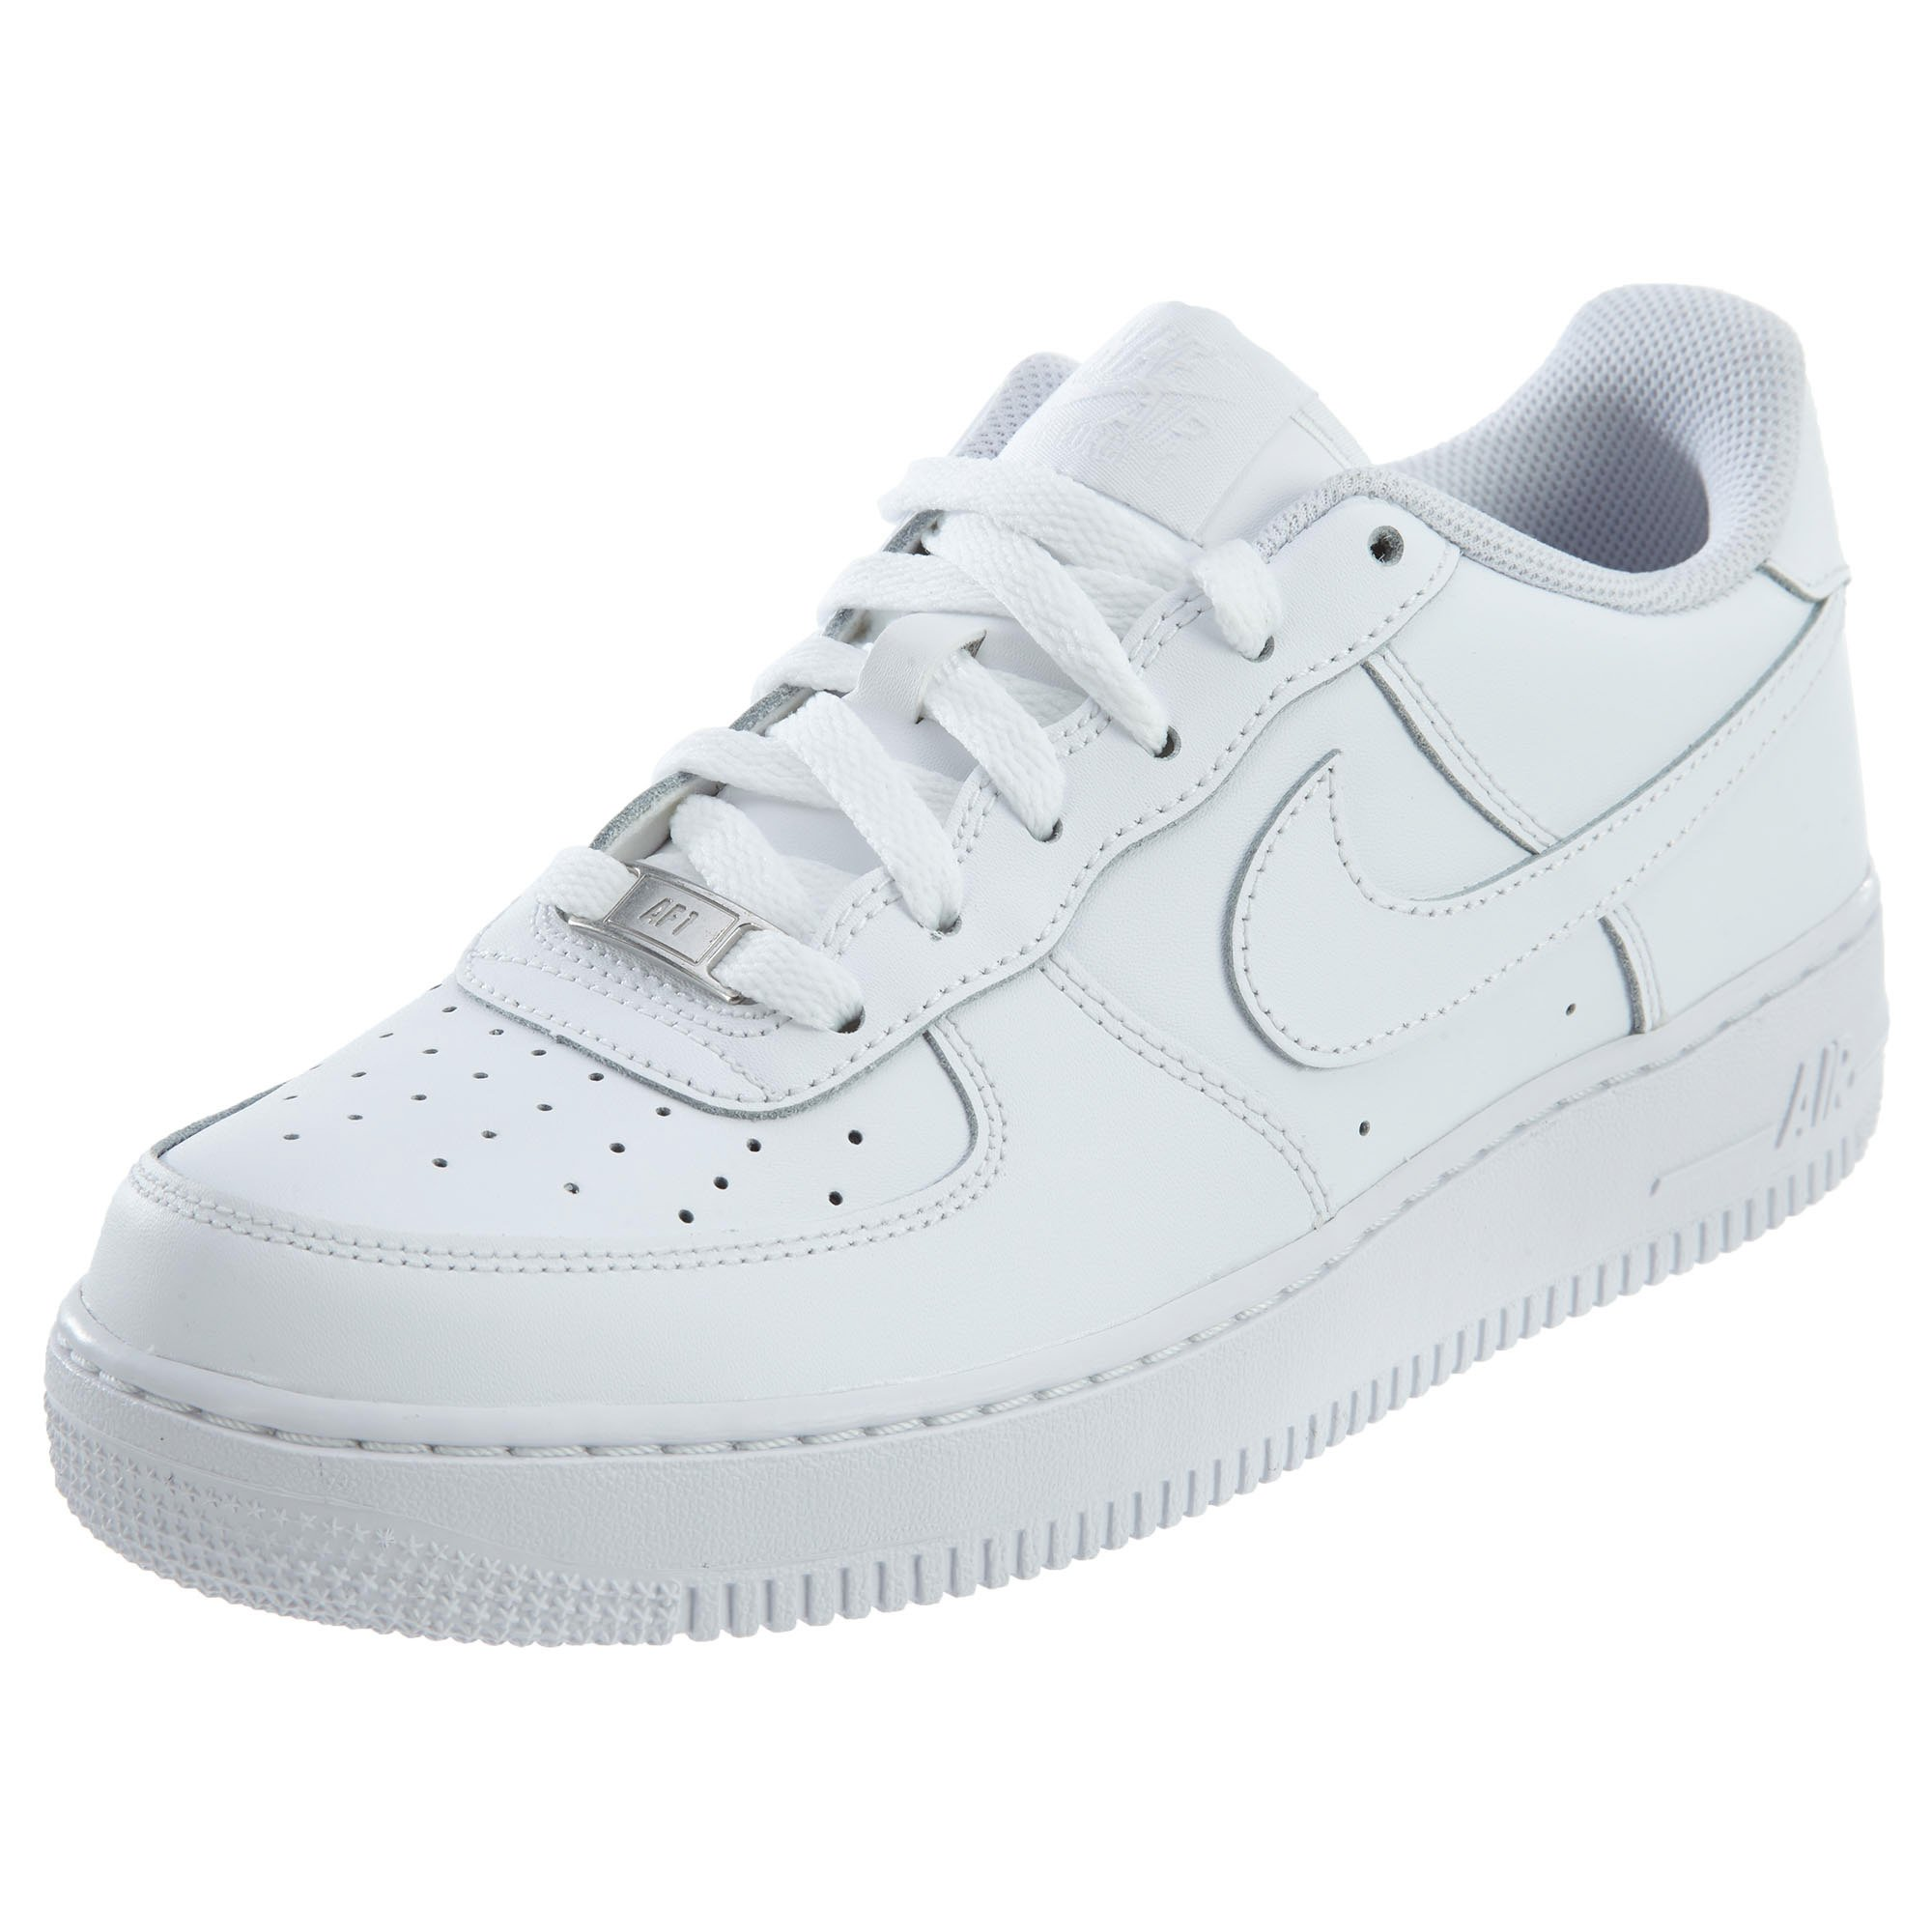 95bceab016f Galleon - Nike Kids Air Force 1 (GS) White White White Basketball Shoe 5.5  Kids US